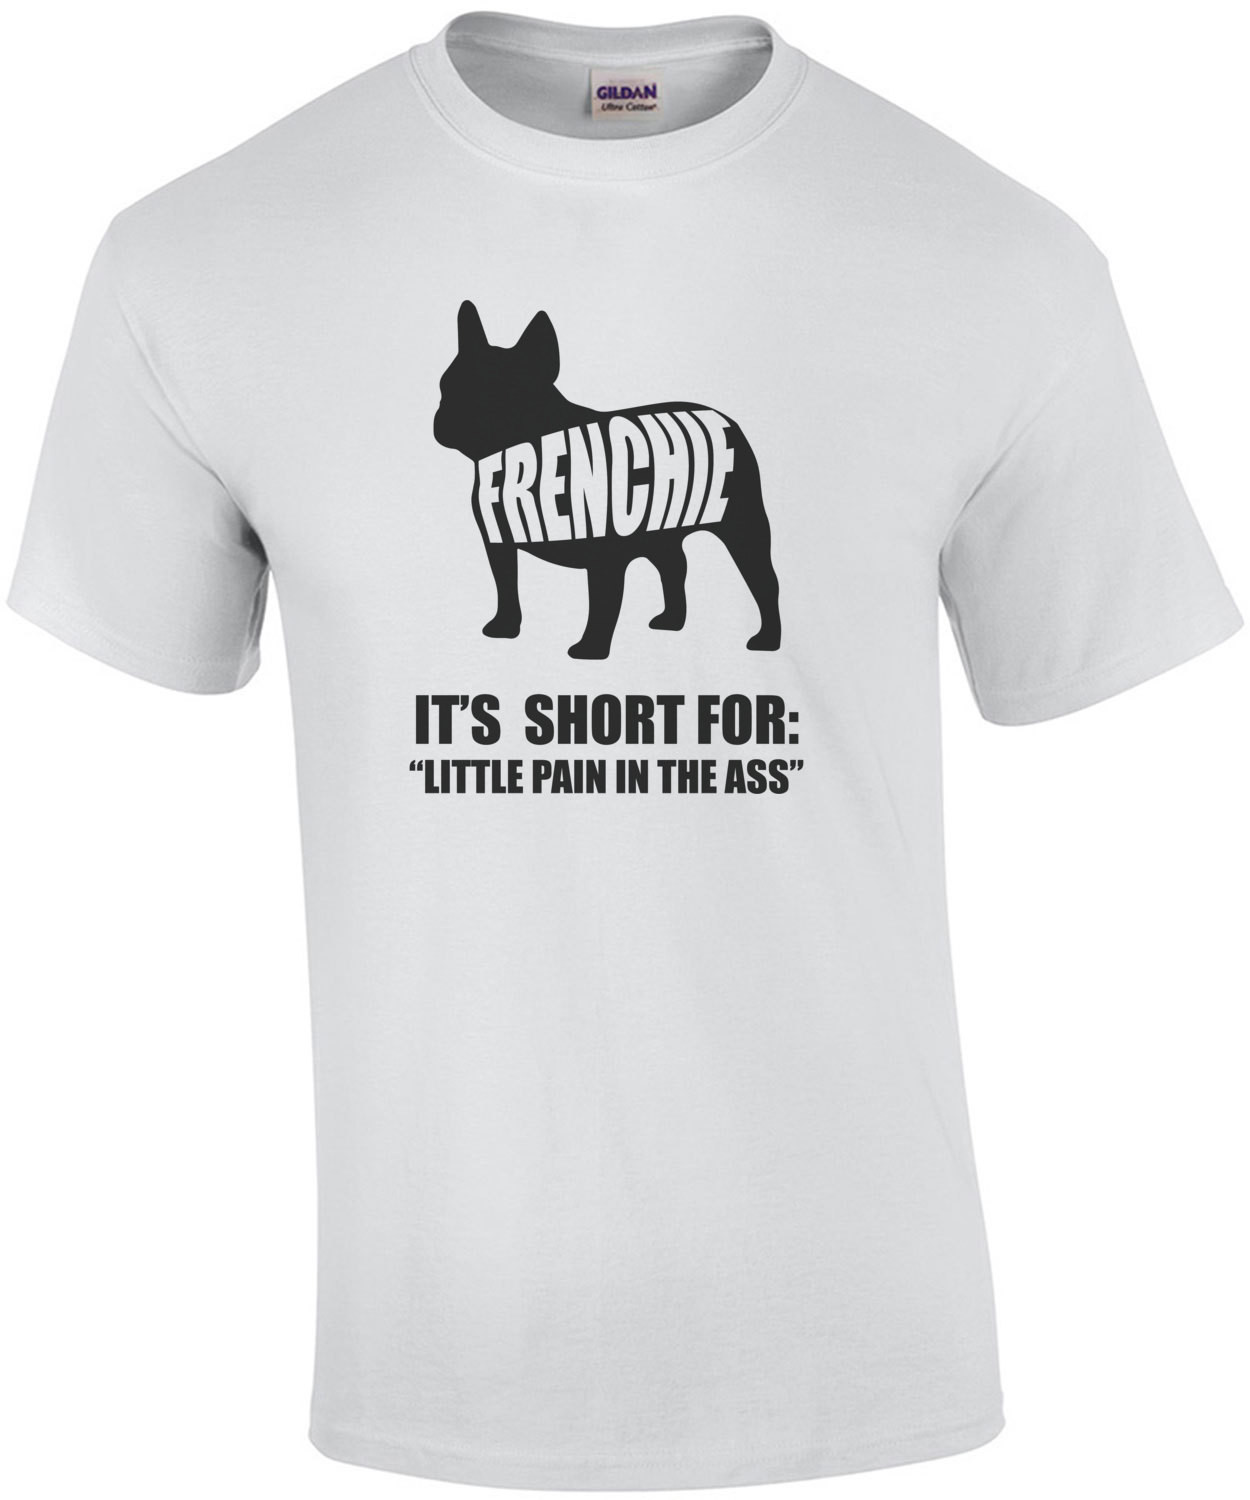 Frenchie - It's short for little pain in the ass - Frenchie / French Bulldog t-shirt